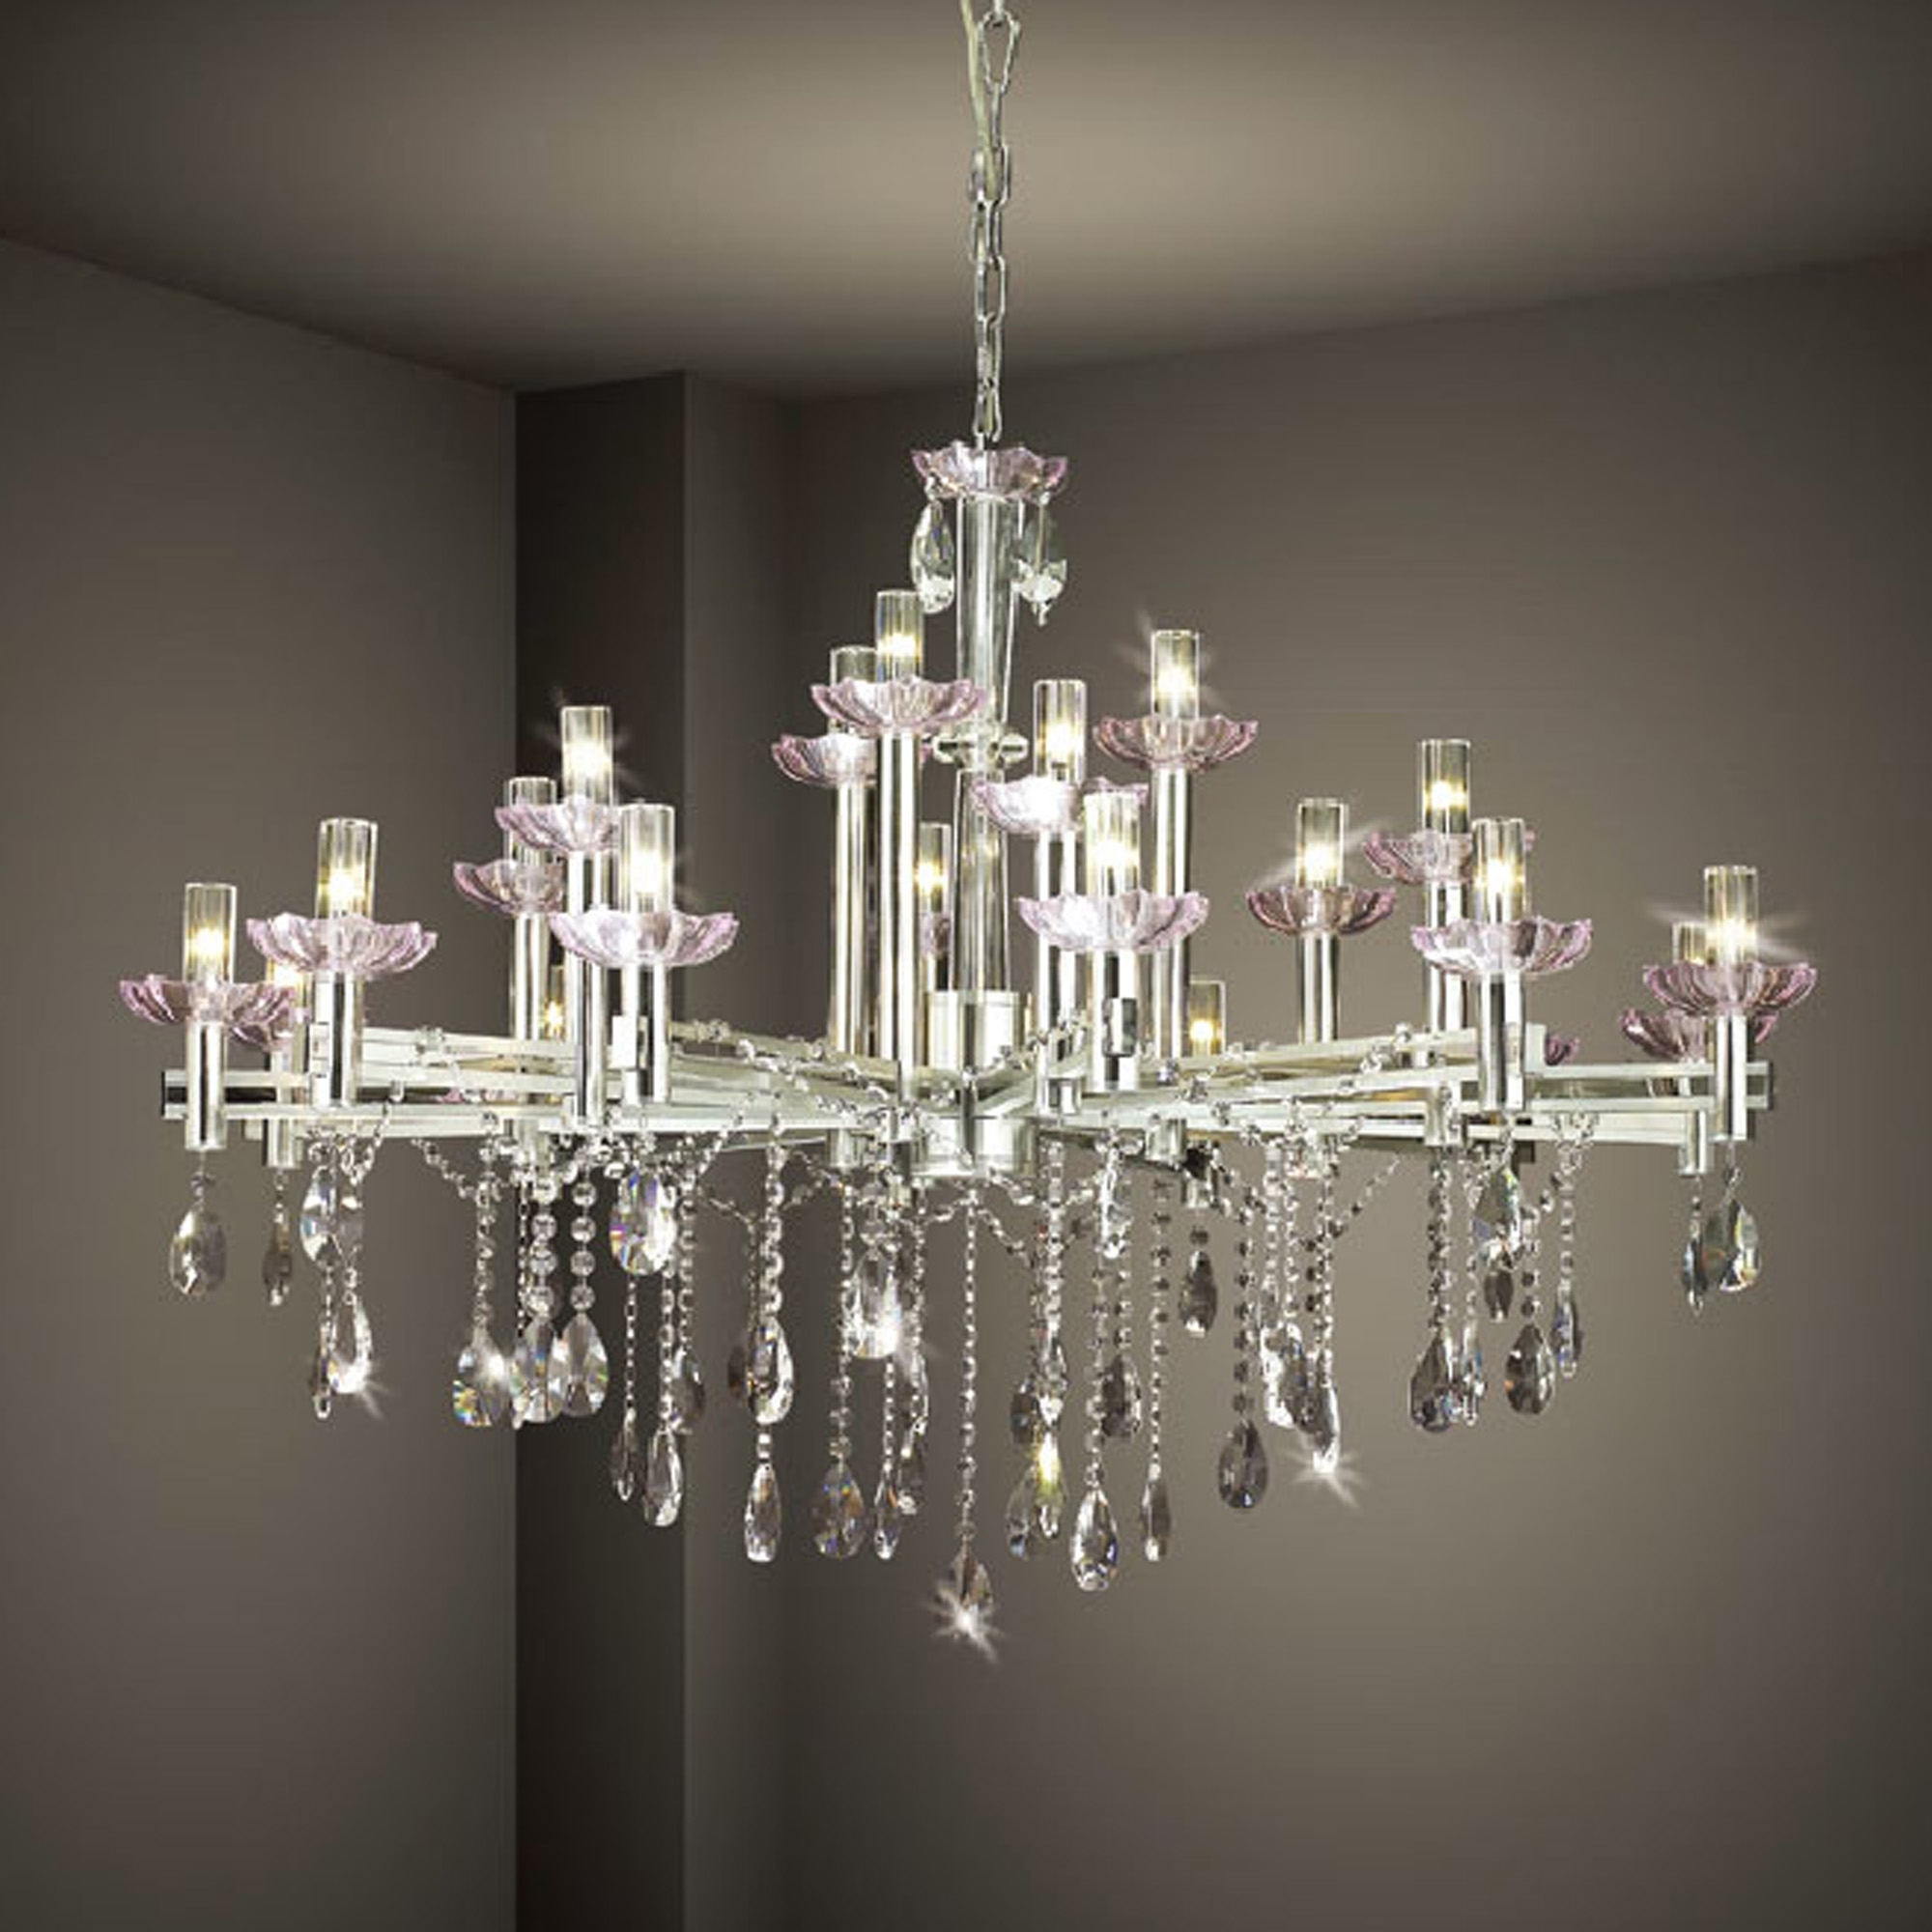 Trendy Contemporary Modern Chandelier Throughout Tips Placing Contemporary Chandeliers At Ceiling (View 14 of 20)